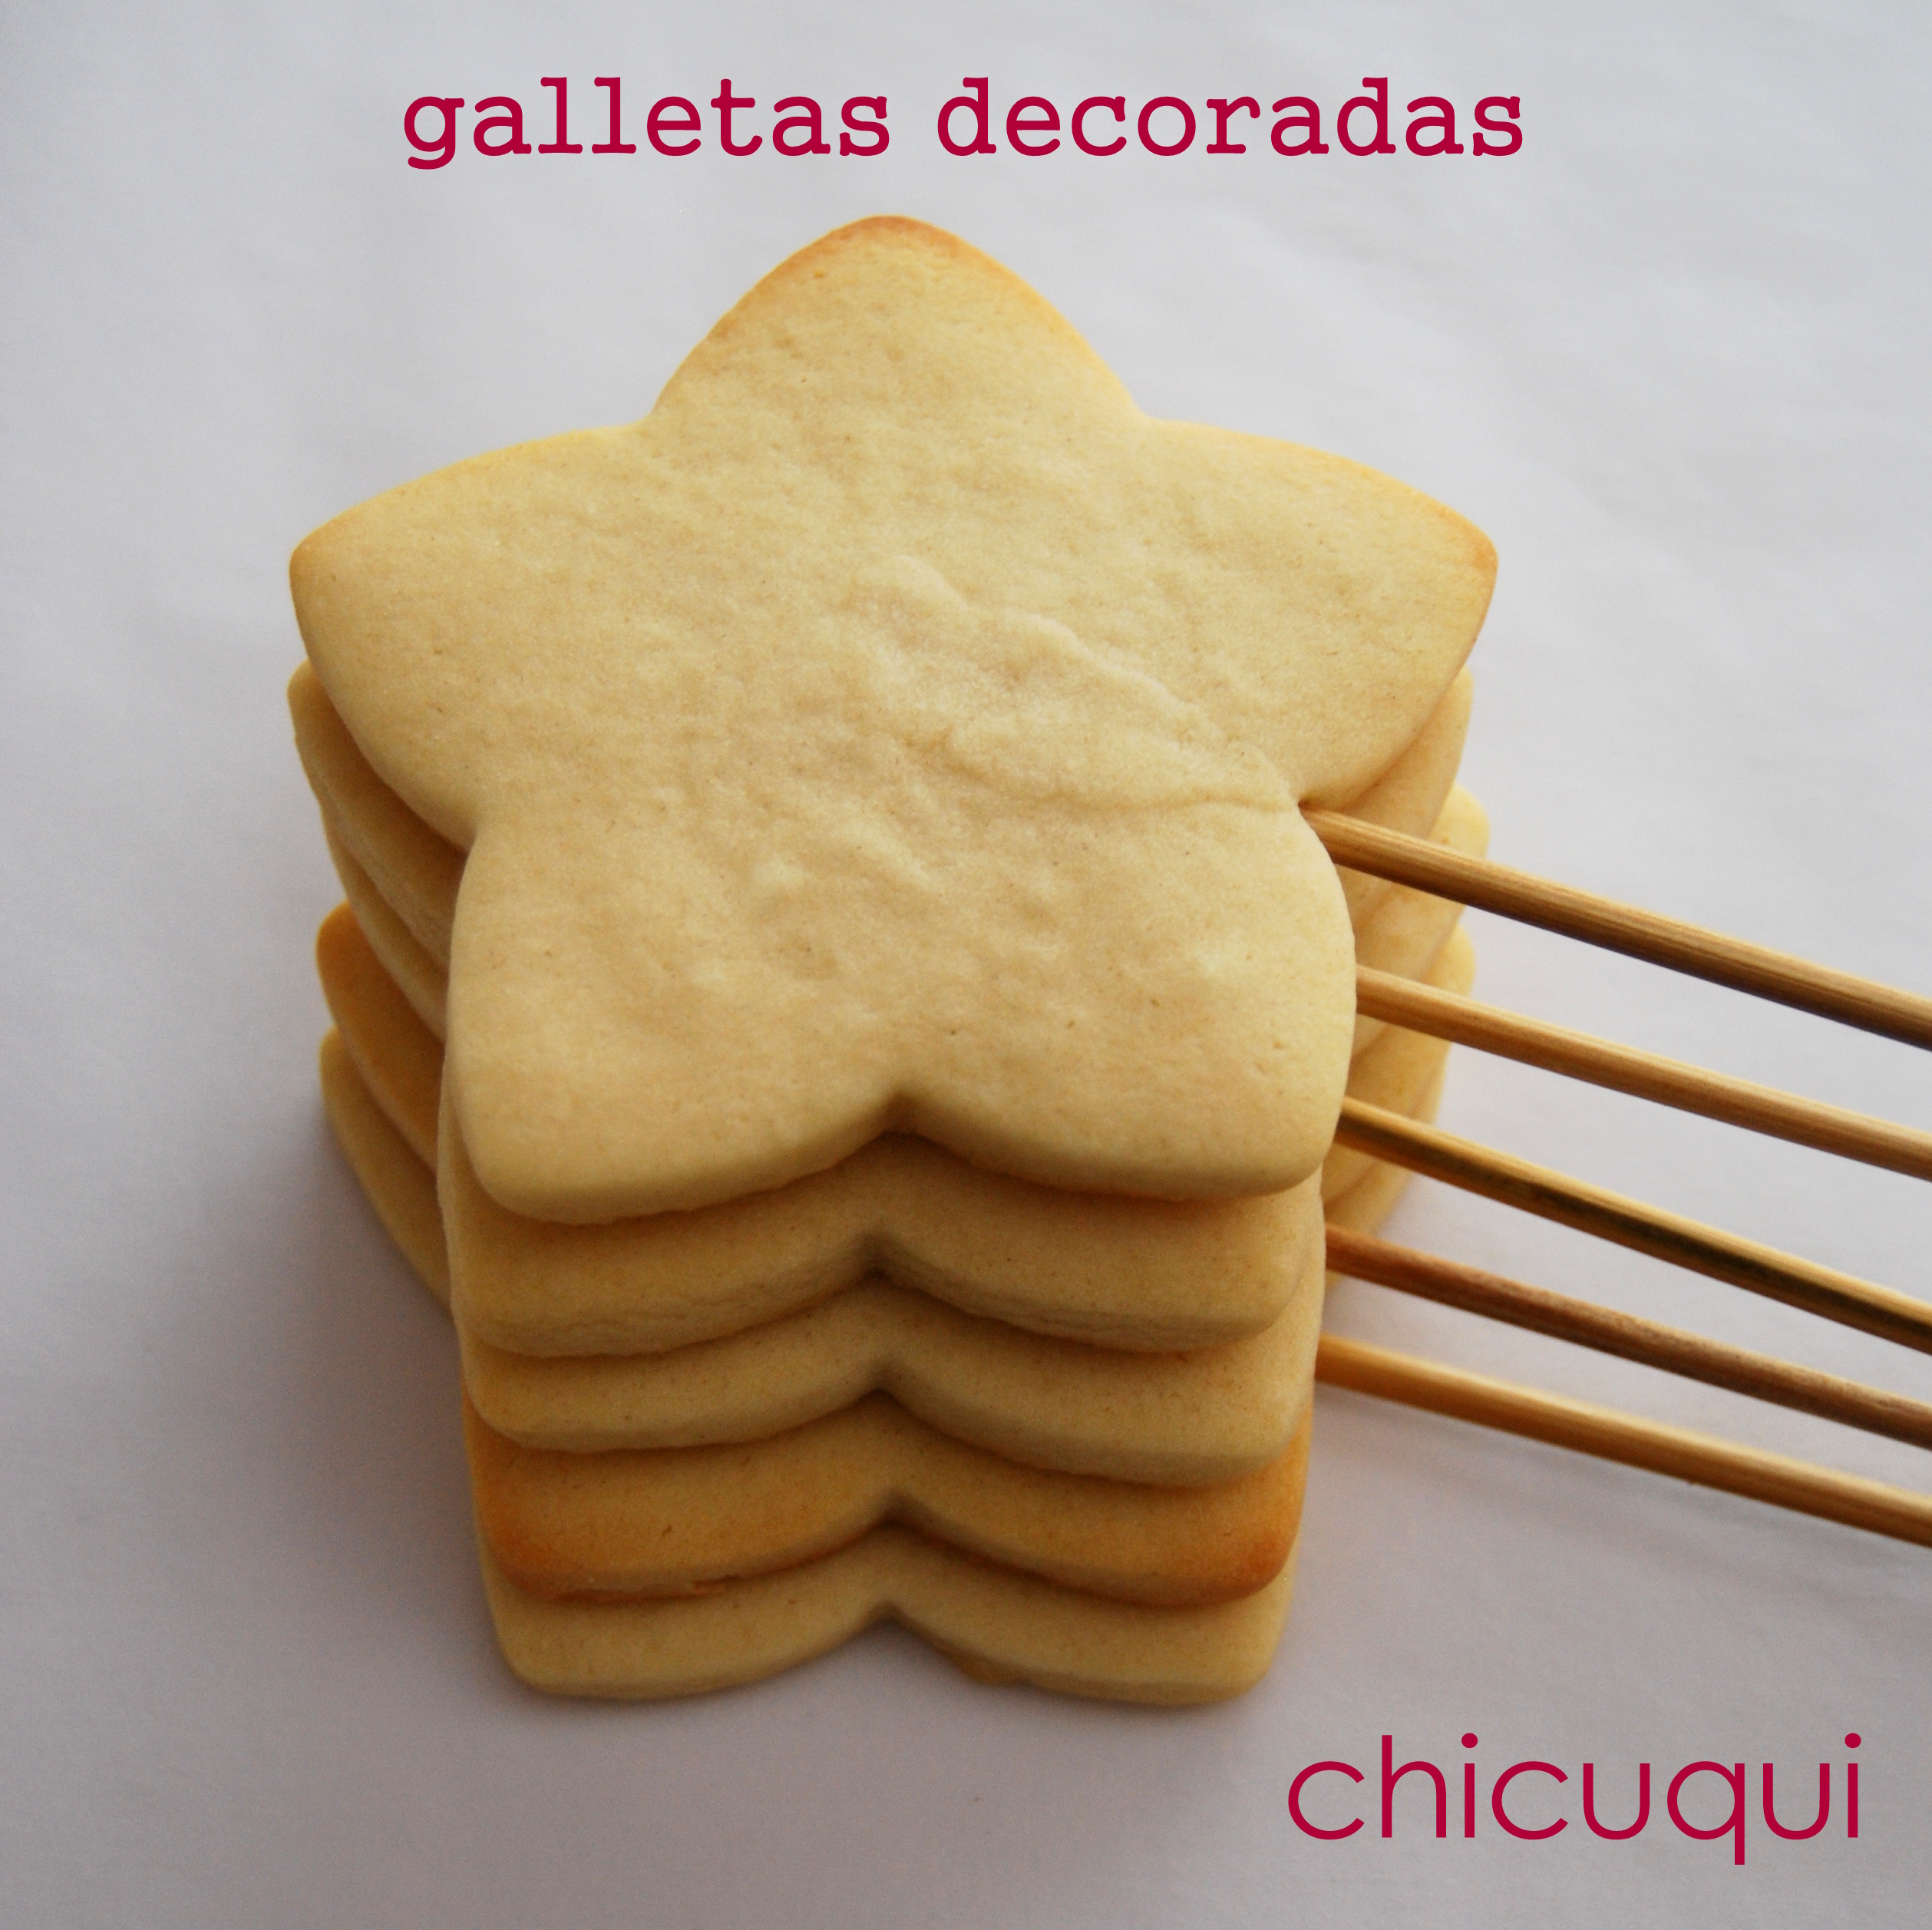 Receta de galletas decoradas